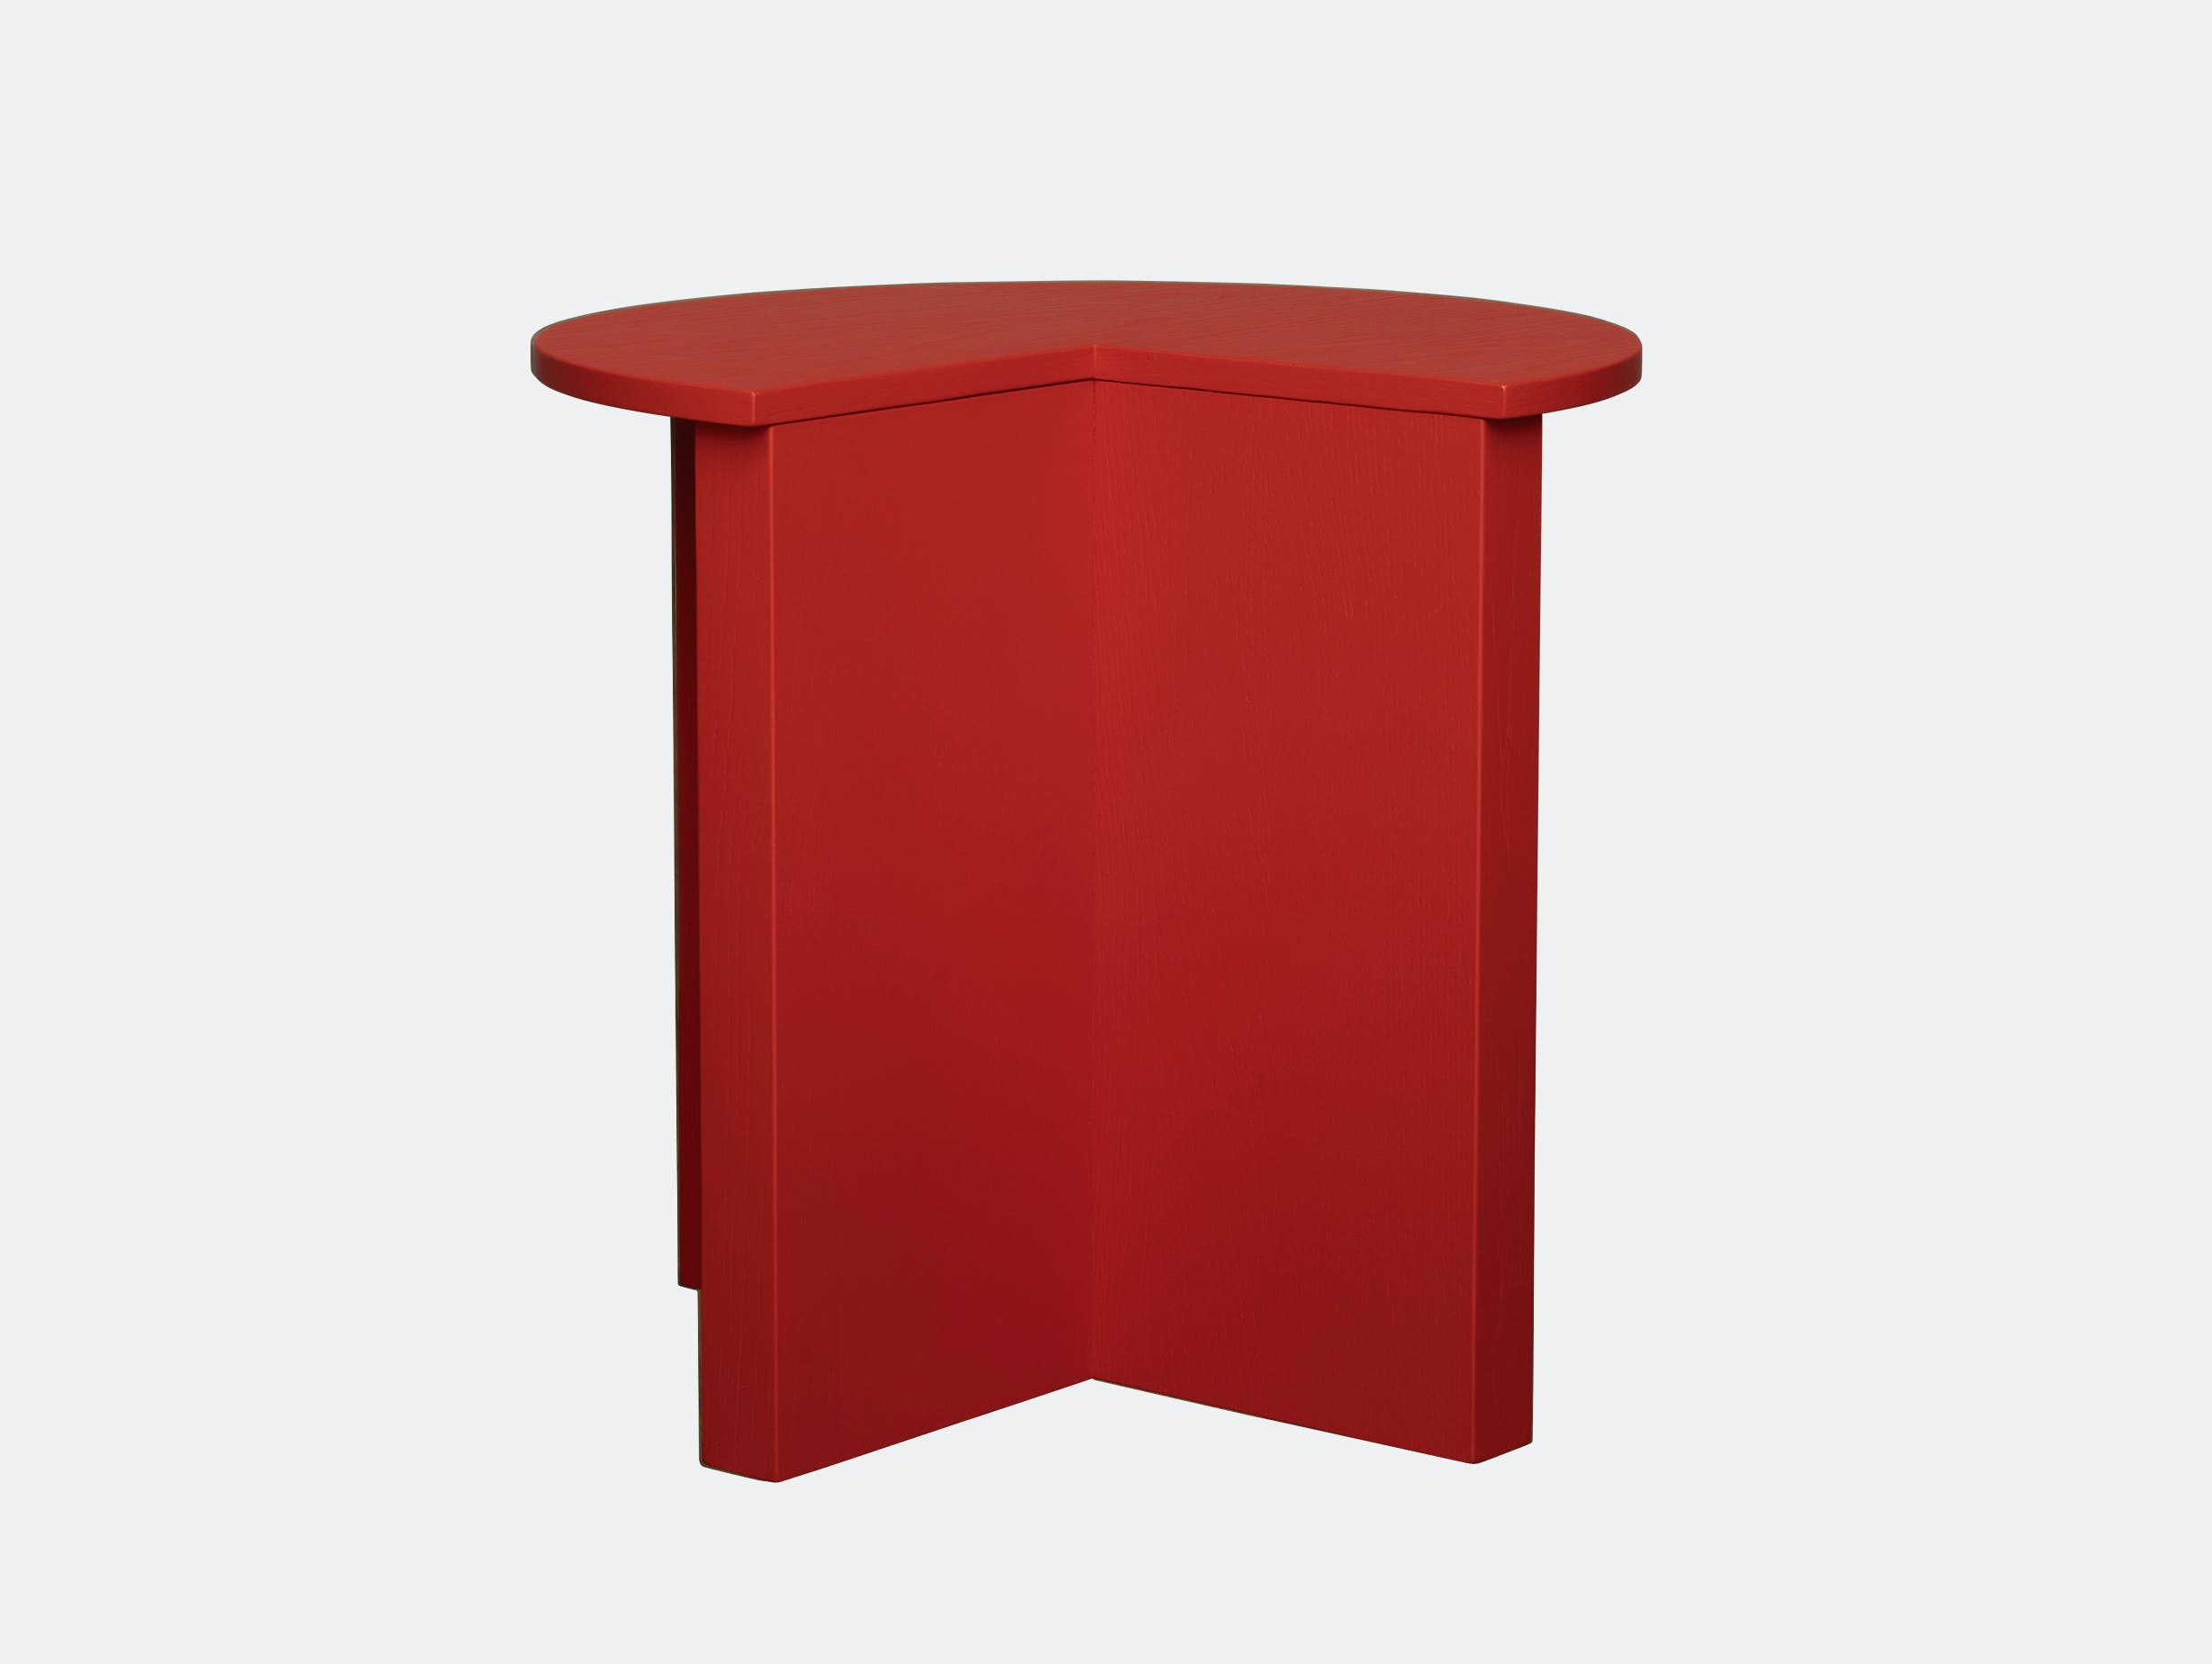 Fogia supersolid object 2 red 3